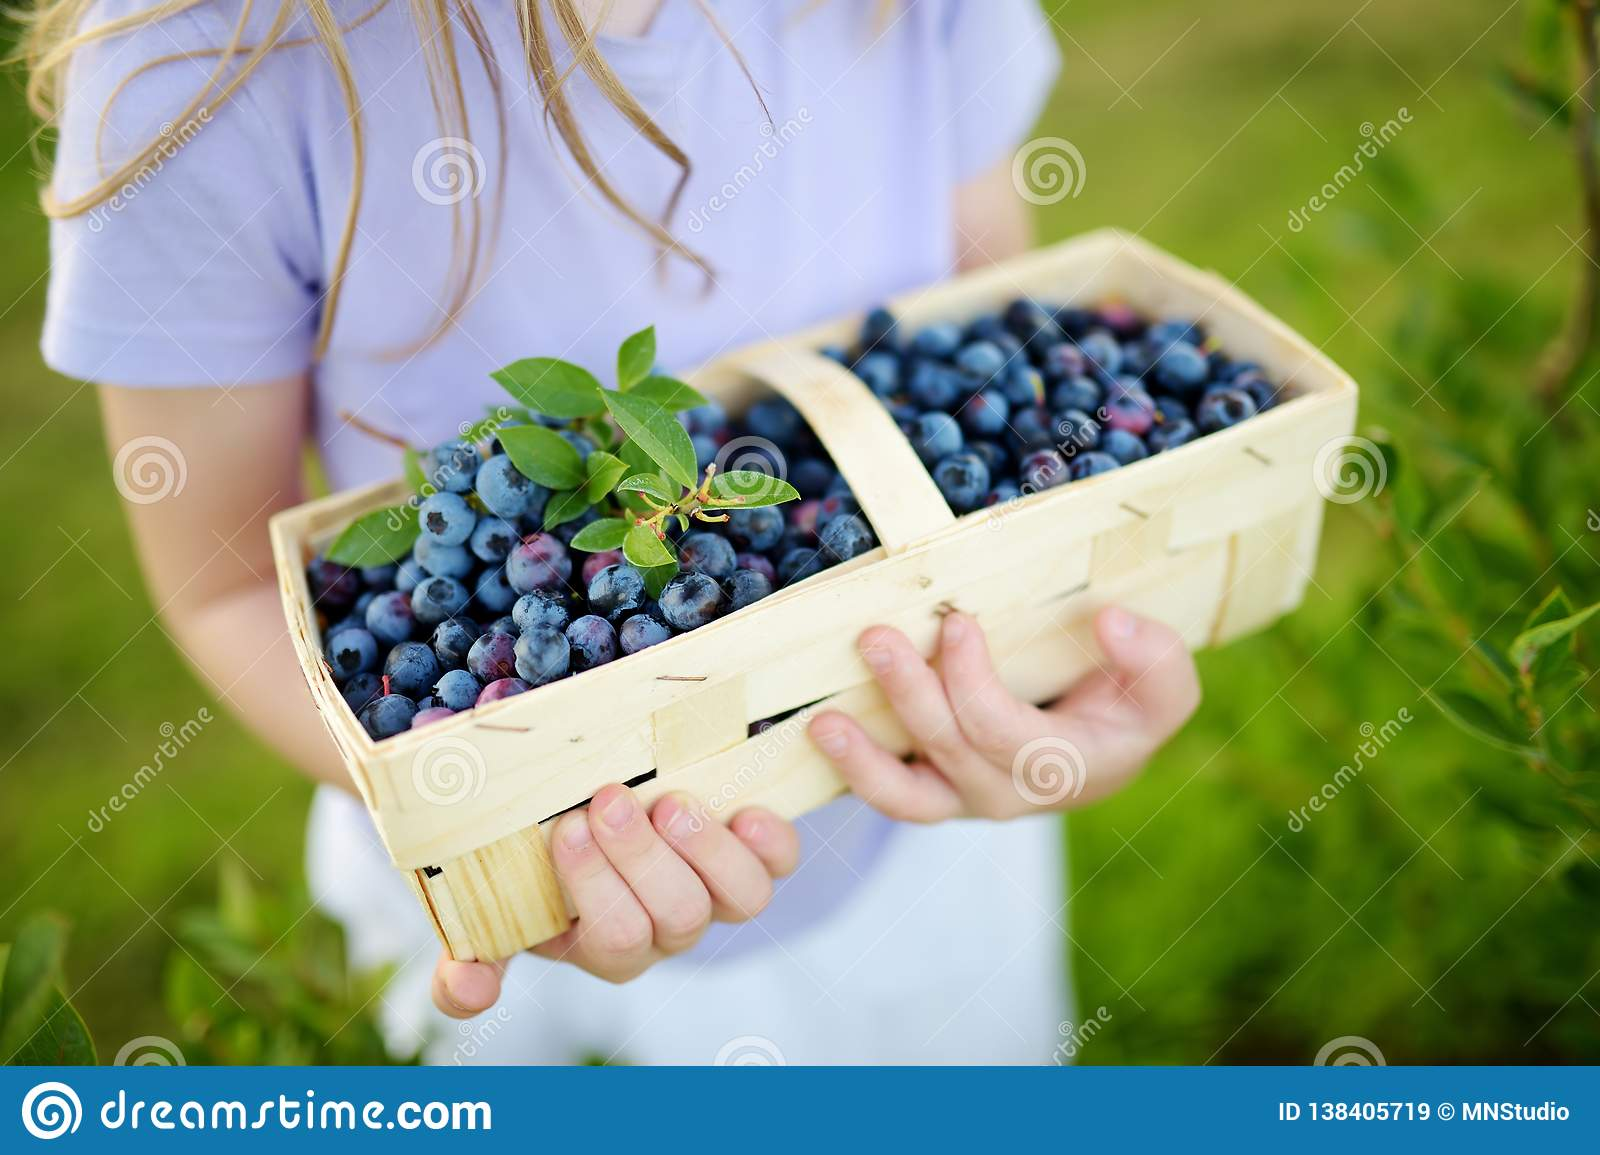 Cute little girl picking fresh berries on organic blueberry farm on warm and sunny summer day. Fresh healthy organic food for